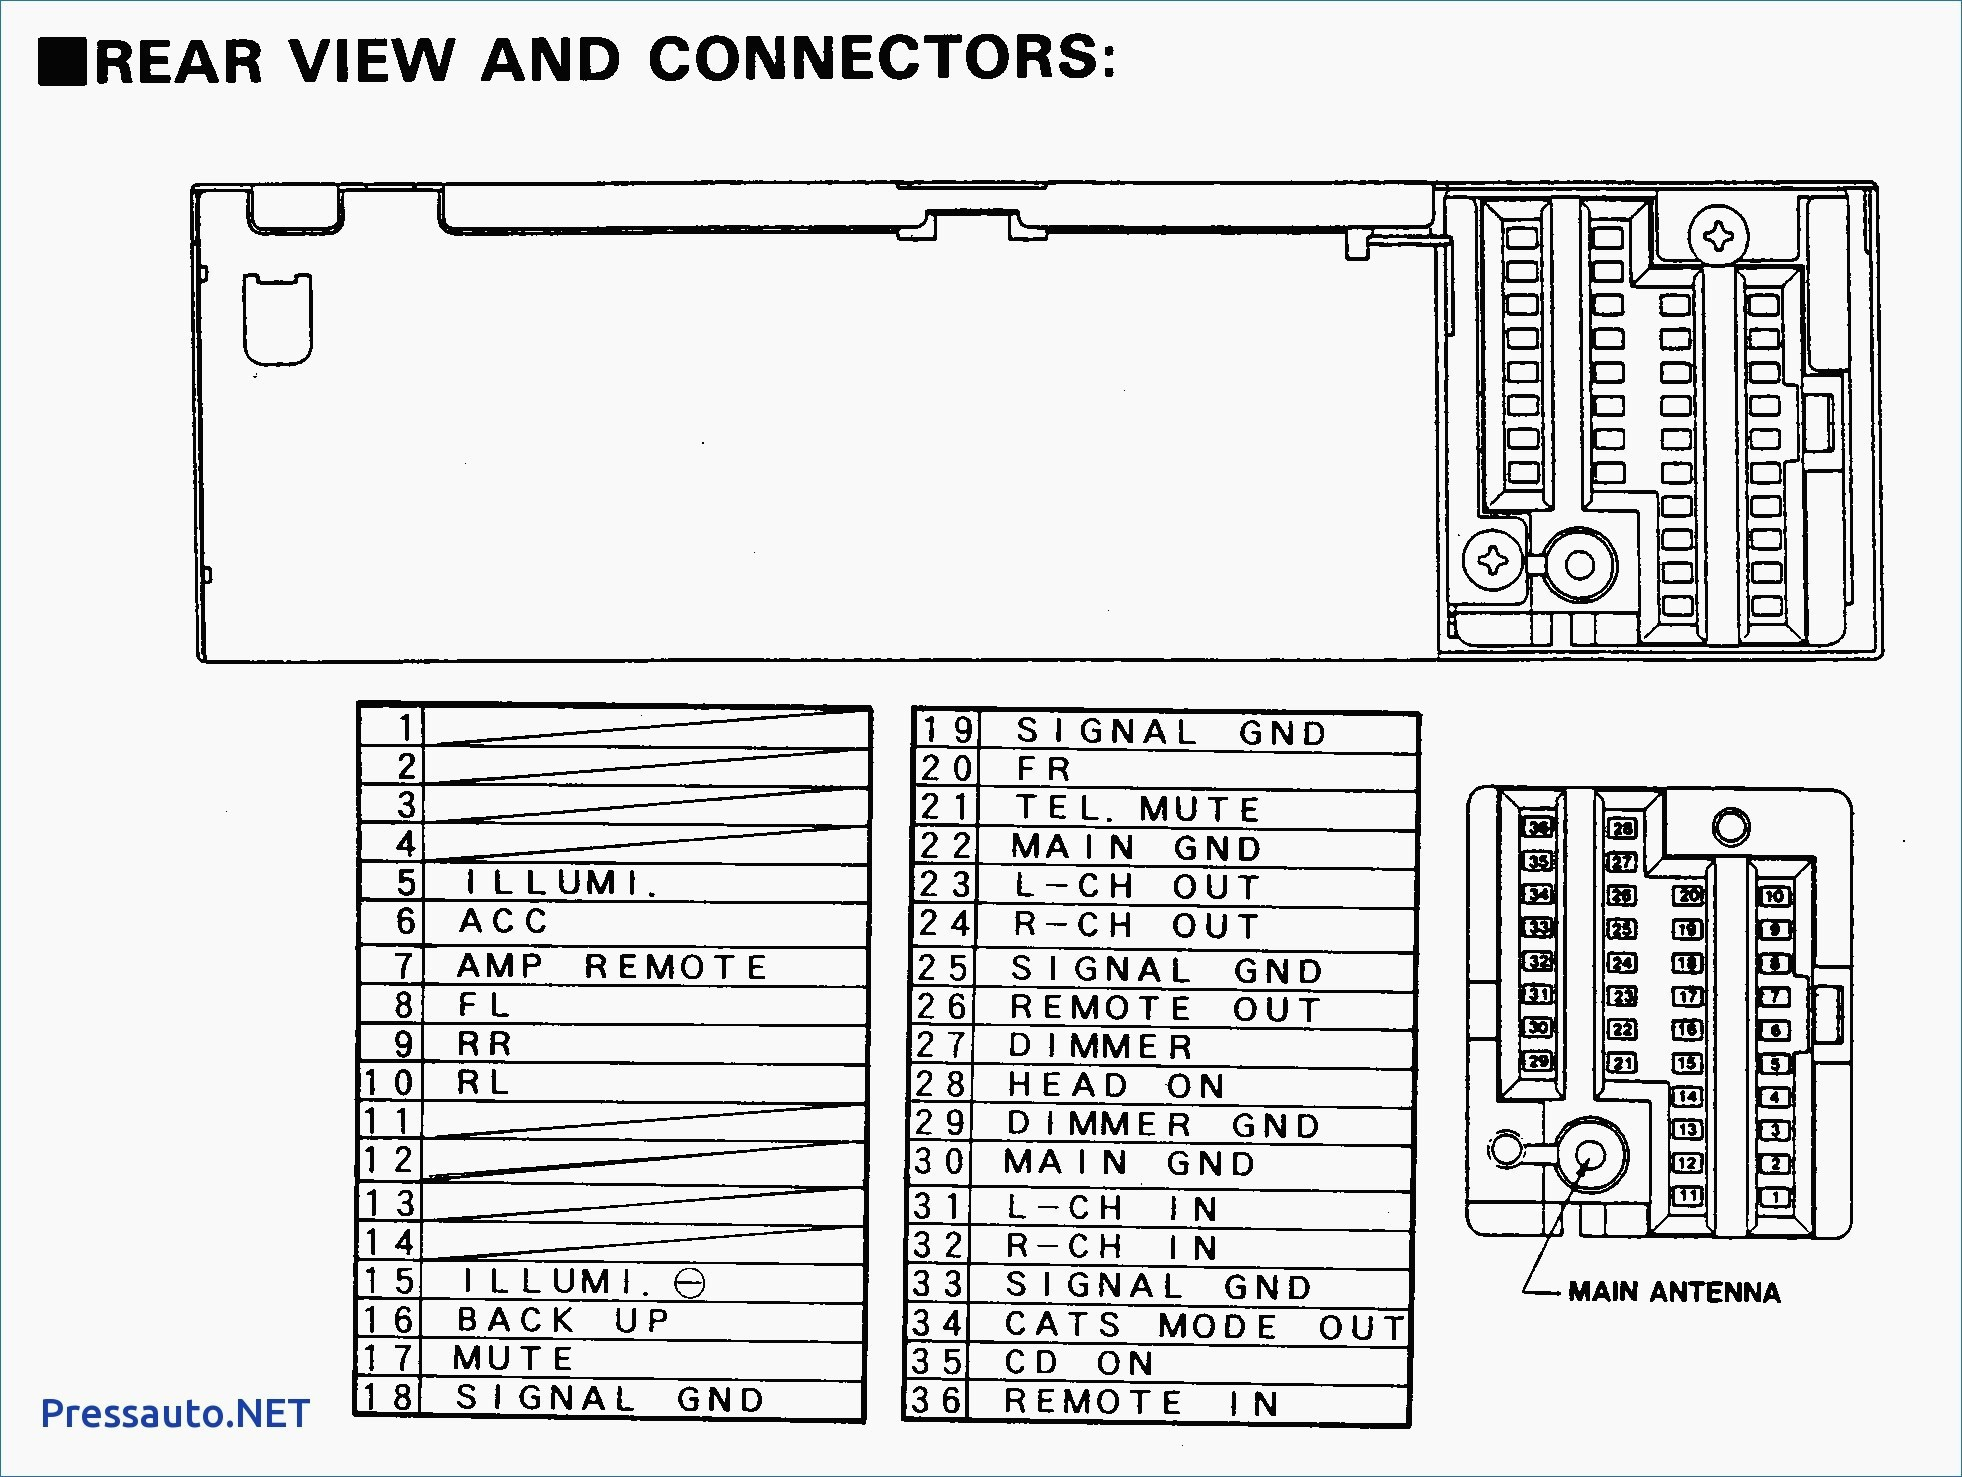 Wiring Diagram Car Stereo Valid Amplifier Wiring Diagram Inspirational Car Stereo Wiring Diagrams 0d